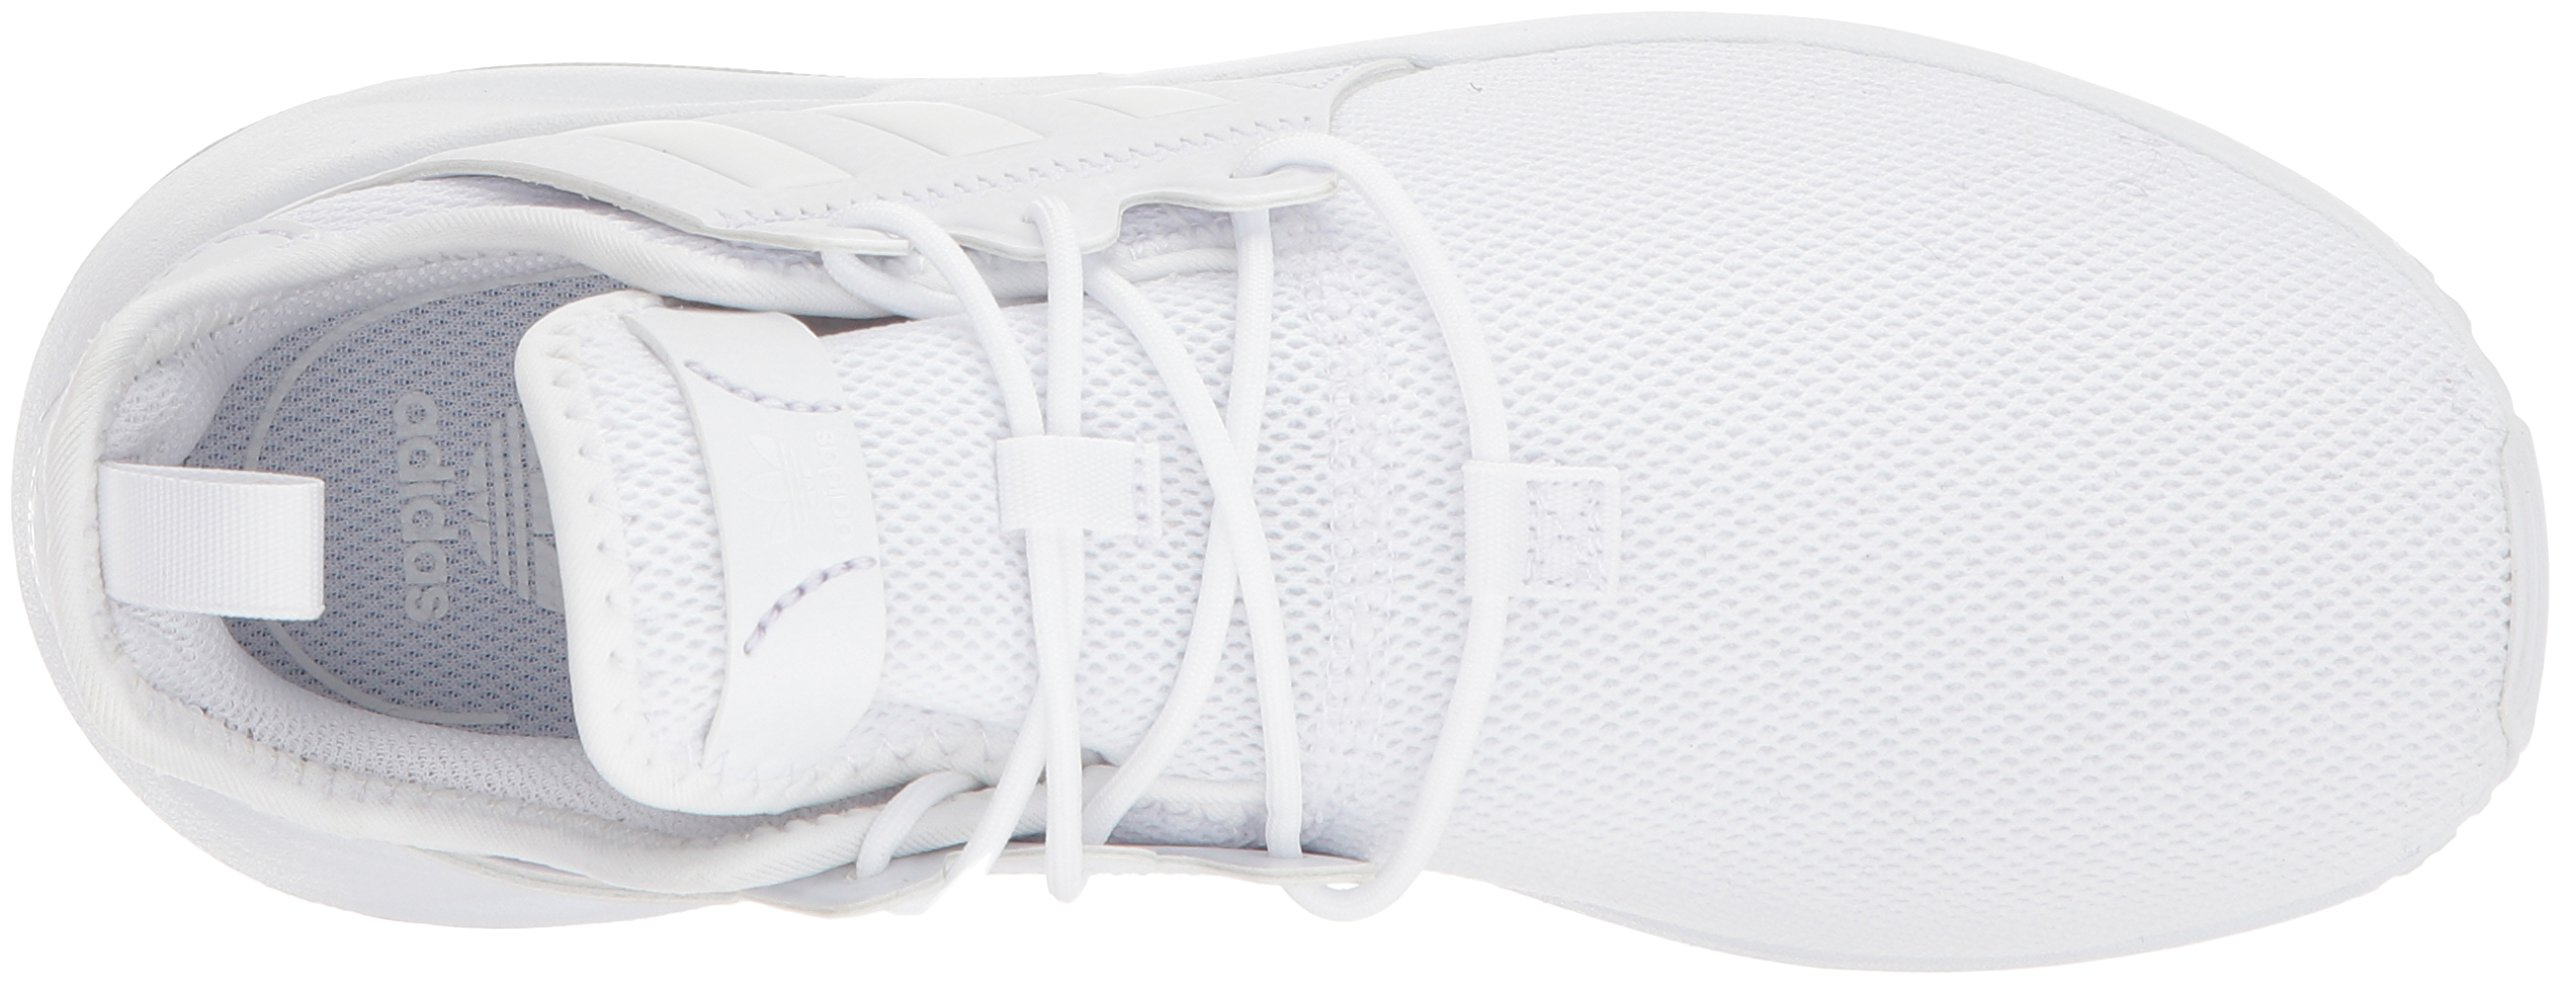 adidas Originals Boys' X_PLR C, White/White/White, 10.5 M US Little Kid by adidas Originals (Image #8)